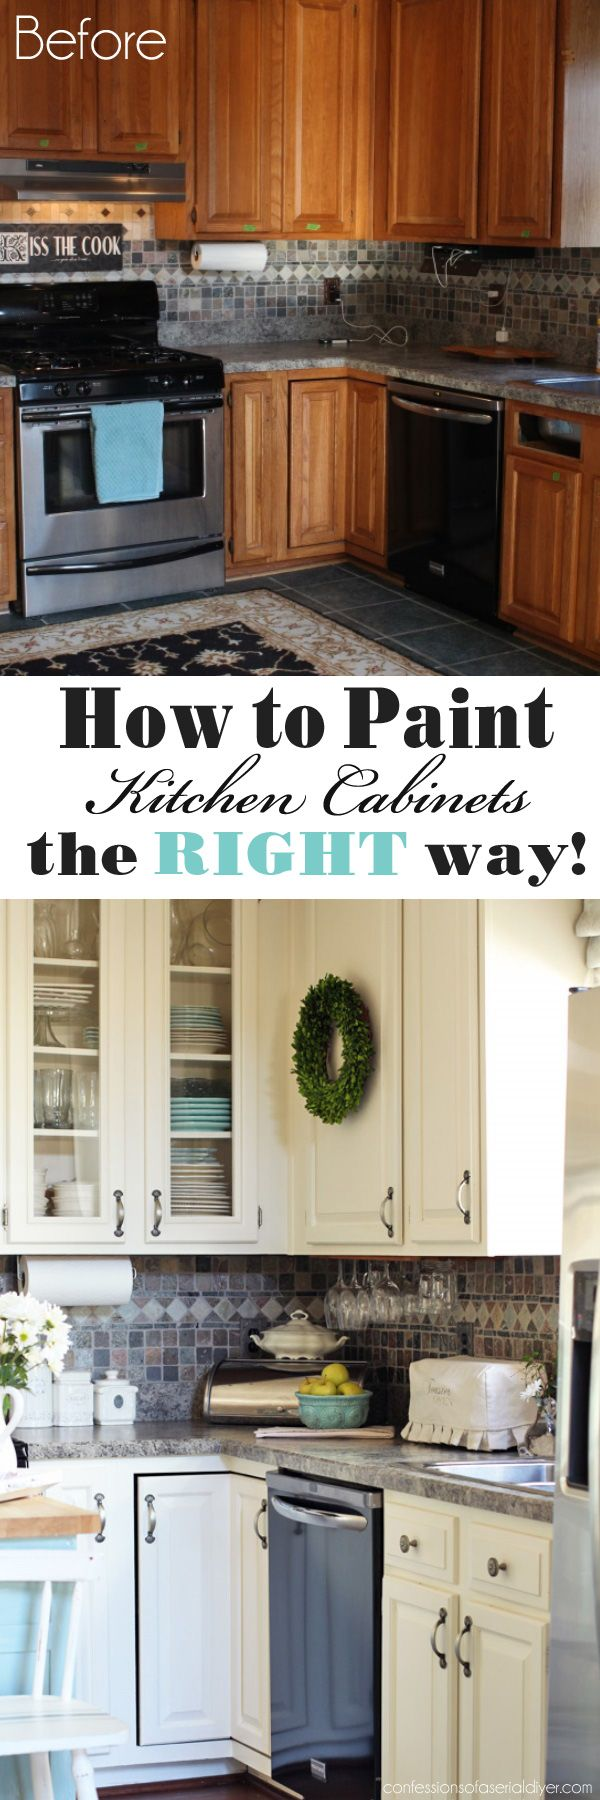 Painted Kitchen Cupboard Ideas best 20+ painted kitchen cupboards ideas on pinterest | painted